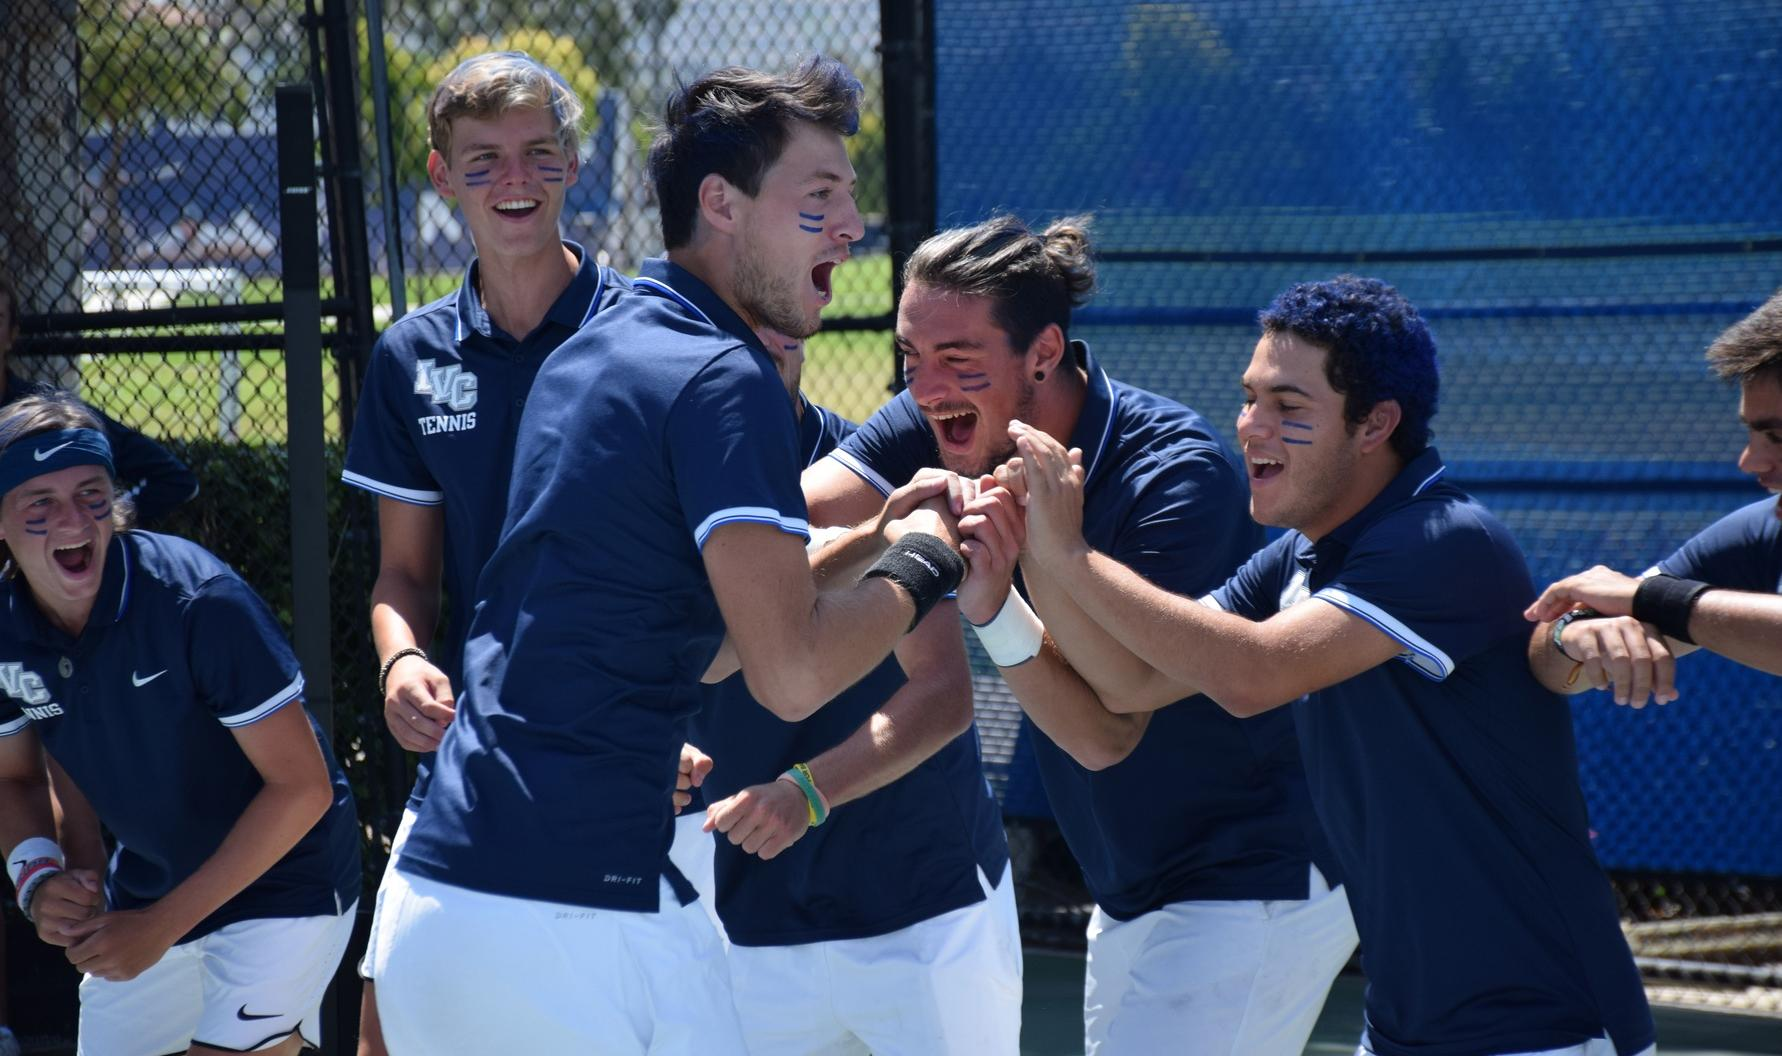 Men's tennis team cruises in opening round of playoffs